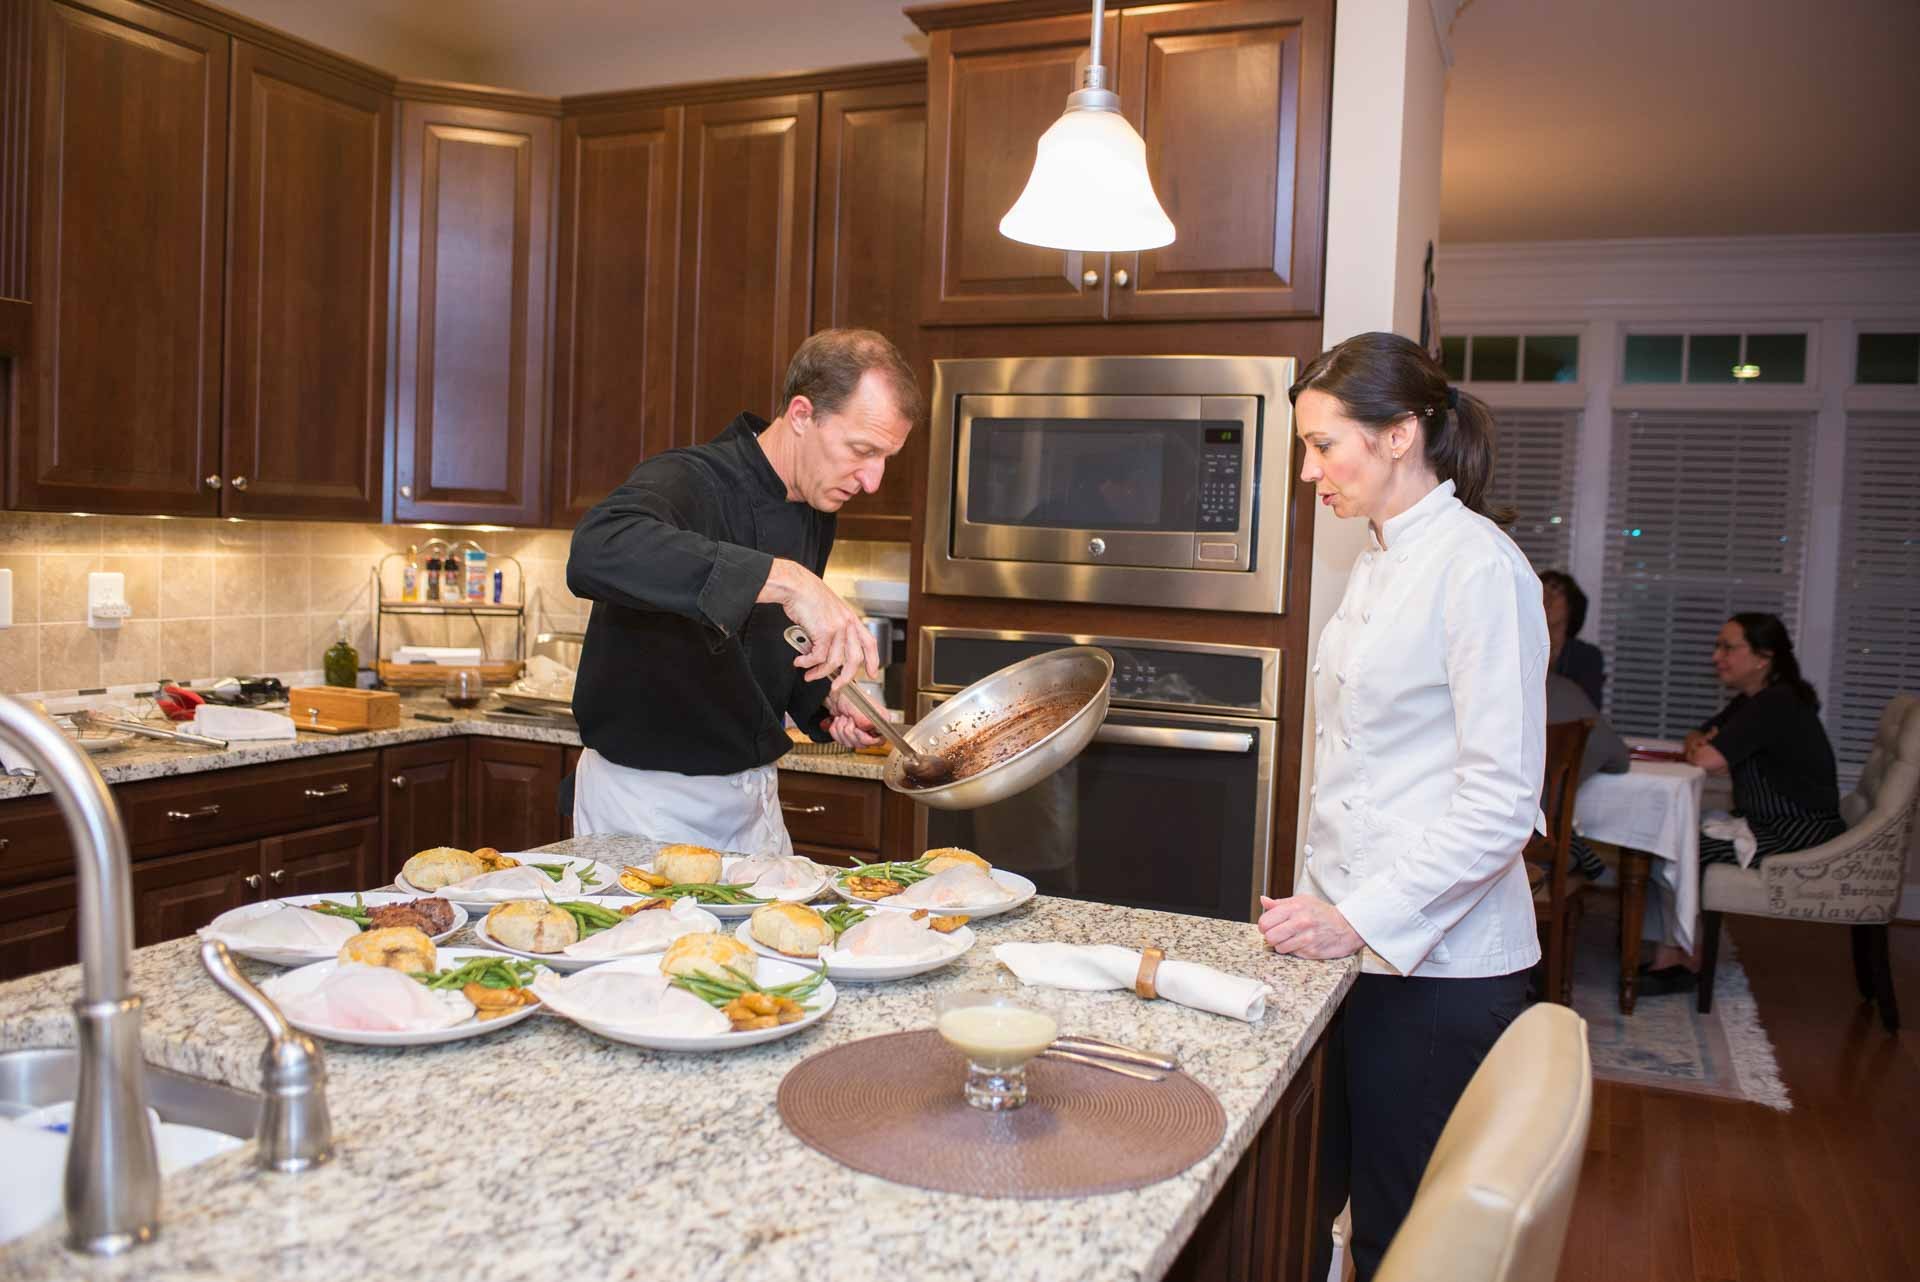 Chef Theo and Chef Melissa prep in the kitchen